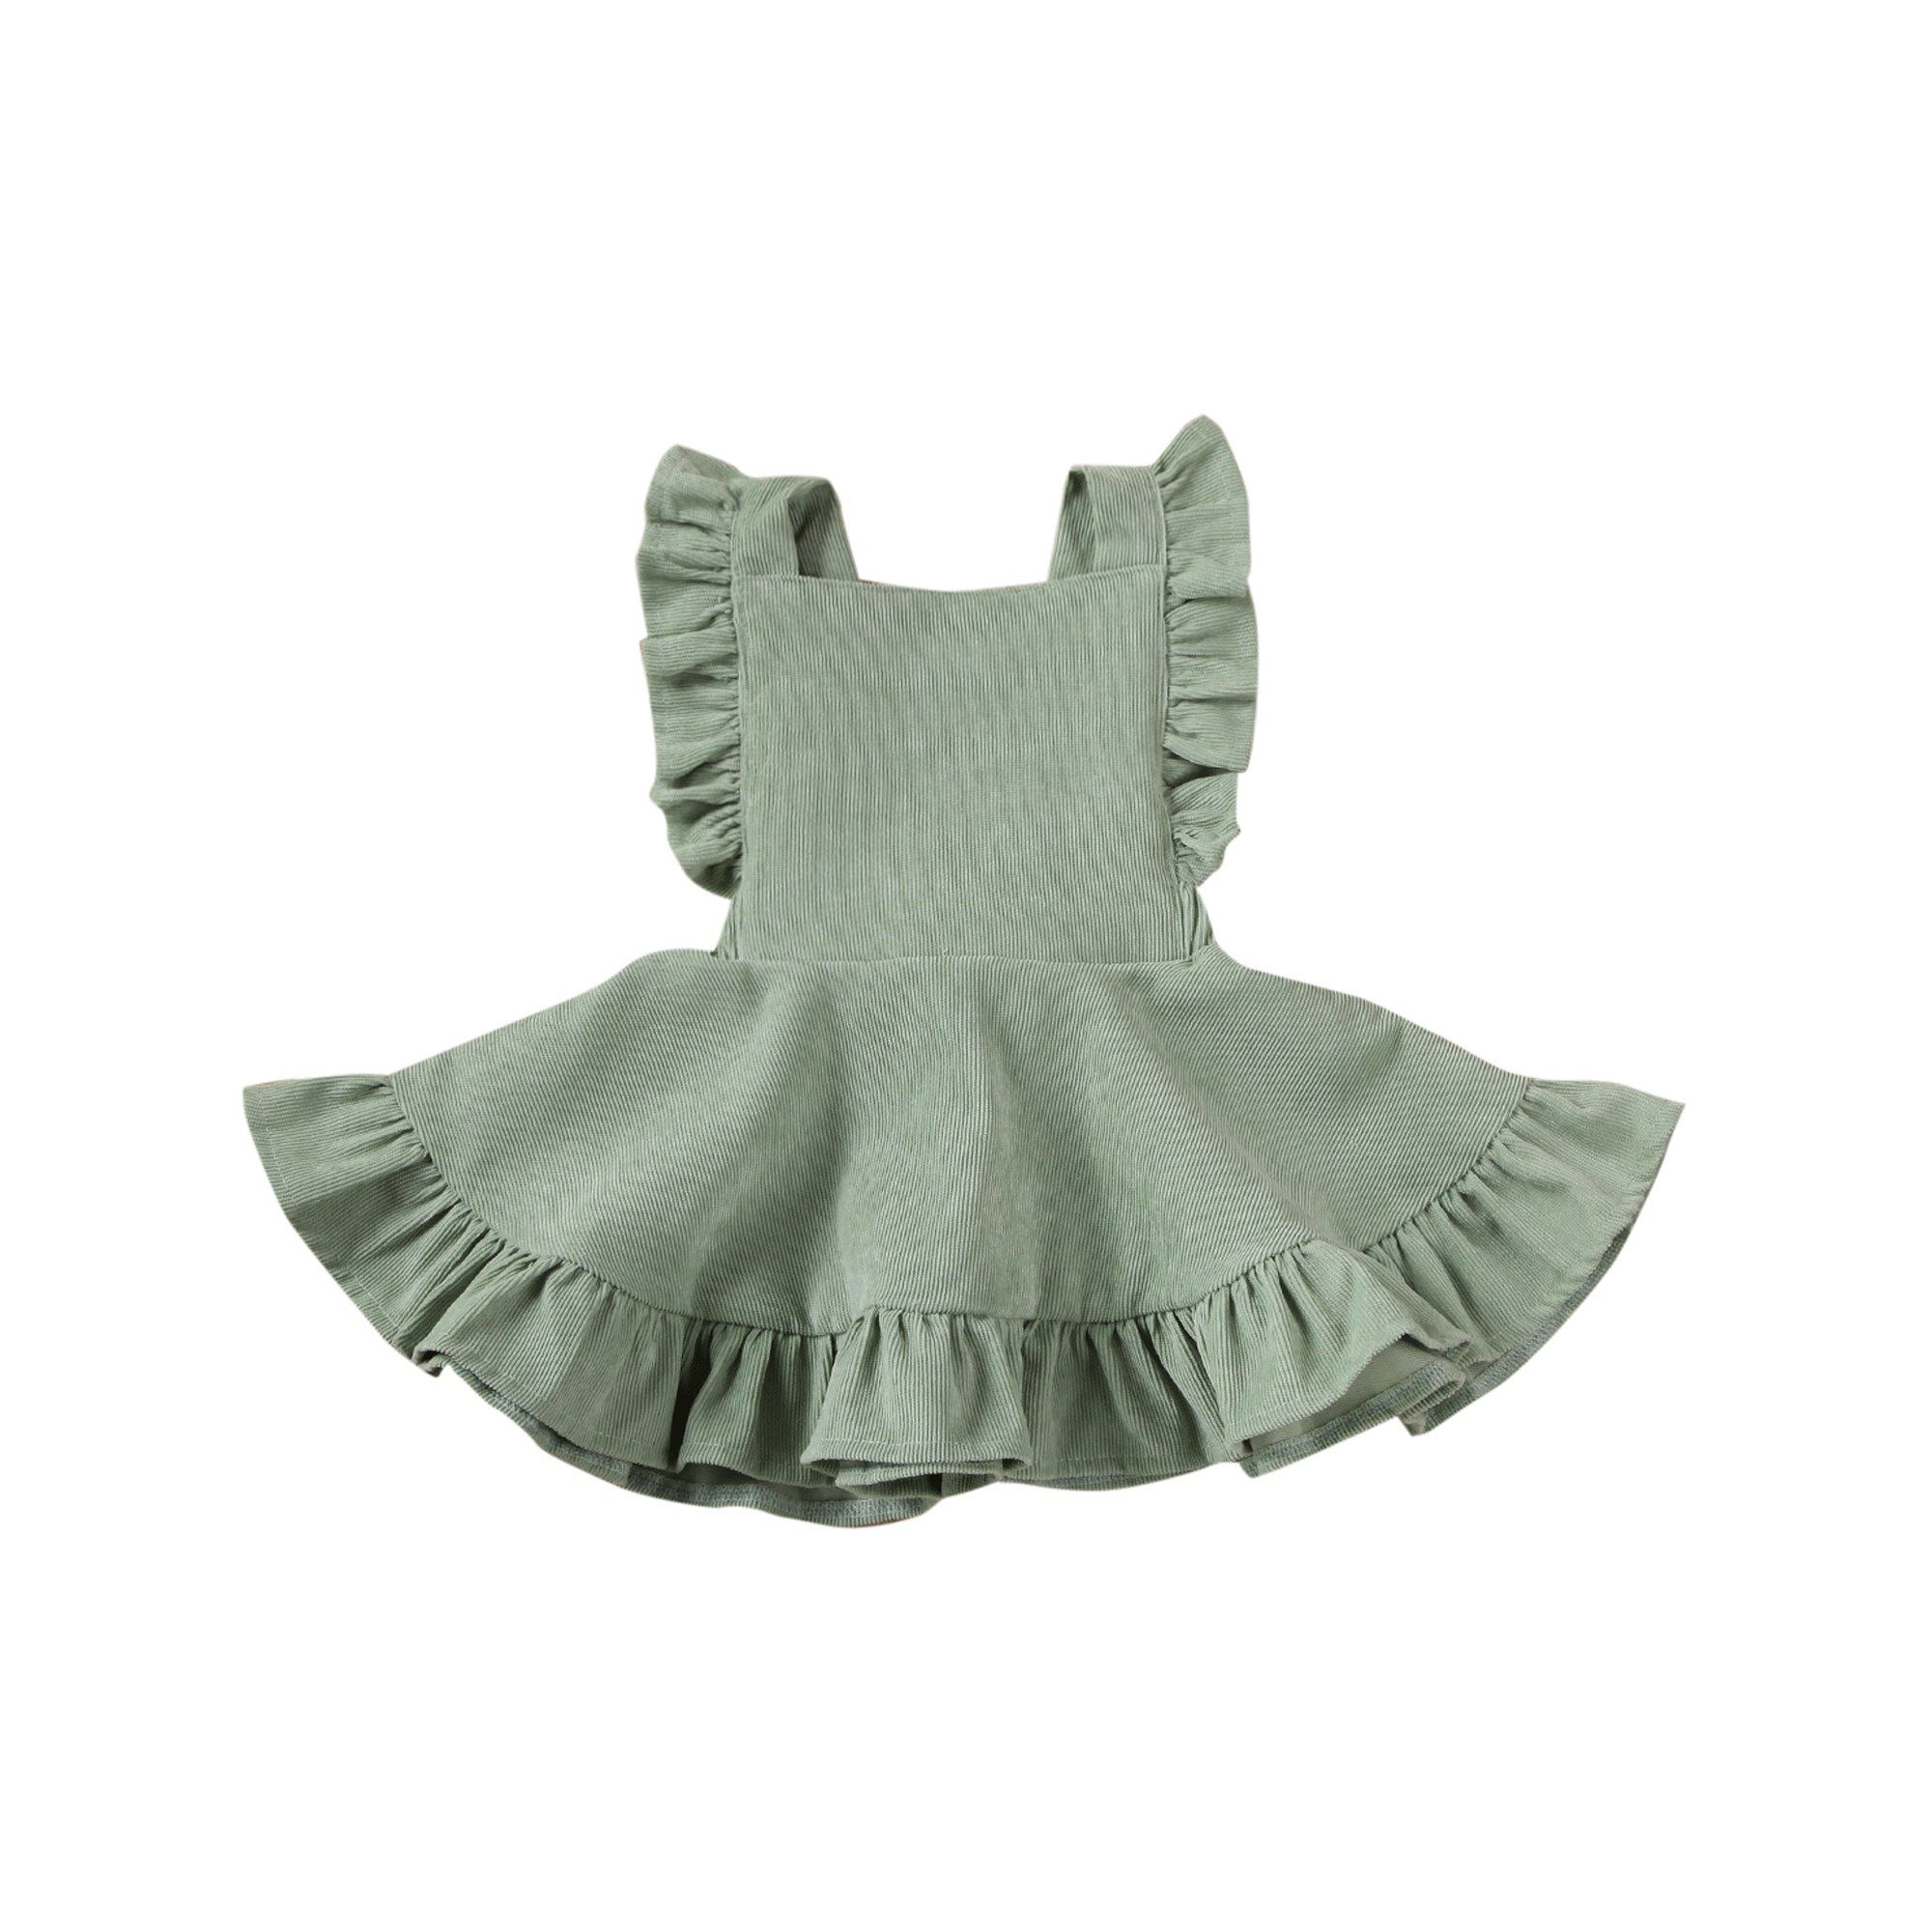 Gupgi Spring Baby Girls Clothes Flowers Ruffle Princess Clothing Skirt Infant Dresses Walm In 2021 Vintage Baby Girl Clothes Princess Dress Kids Tutu Dress Toddler [ 2000 x 2000 Pixel ]